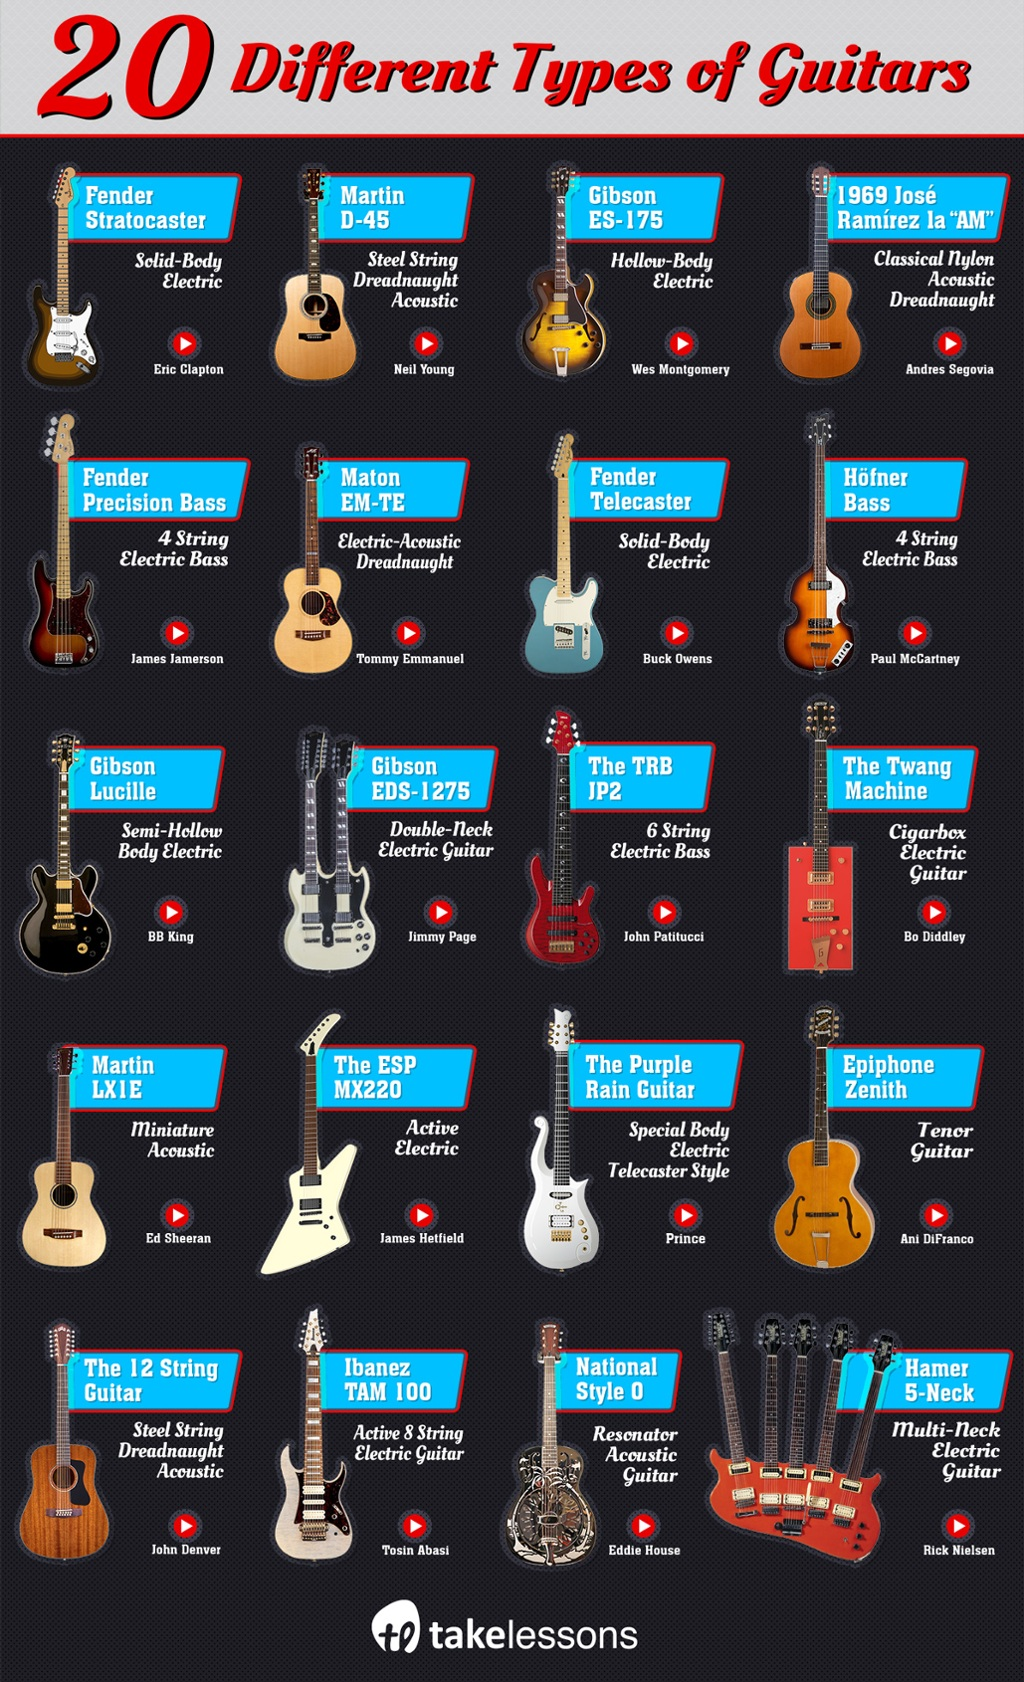 20 different types of guitars the legends who played them infographic takelessons blog. Black Bedroom Furniture Sets. Home Design Ideas